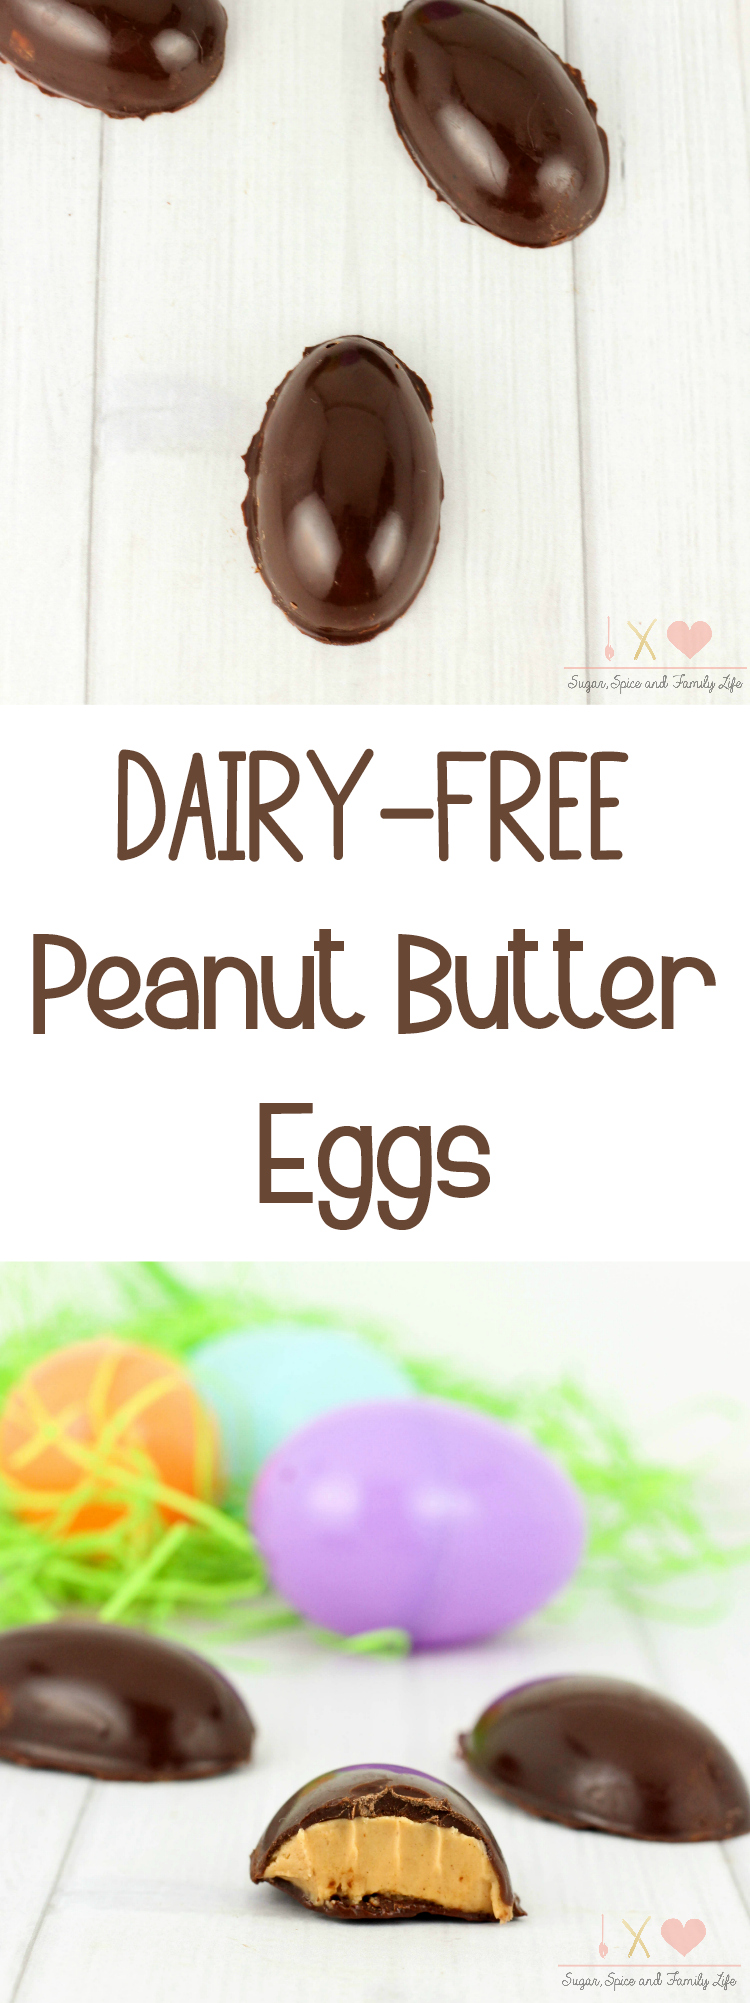 Dairy Free Peanut Butter Eggs